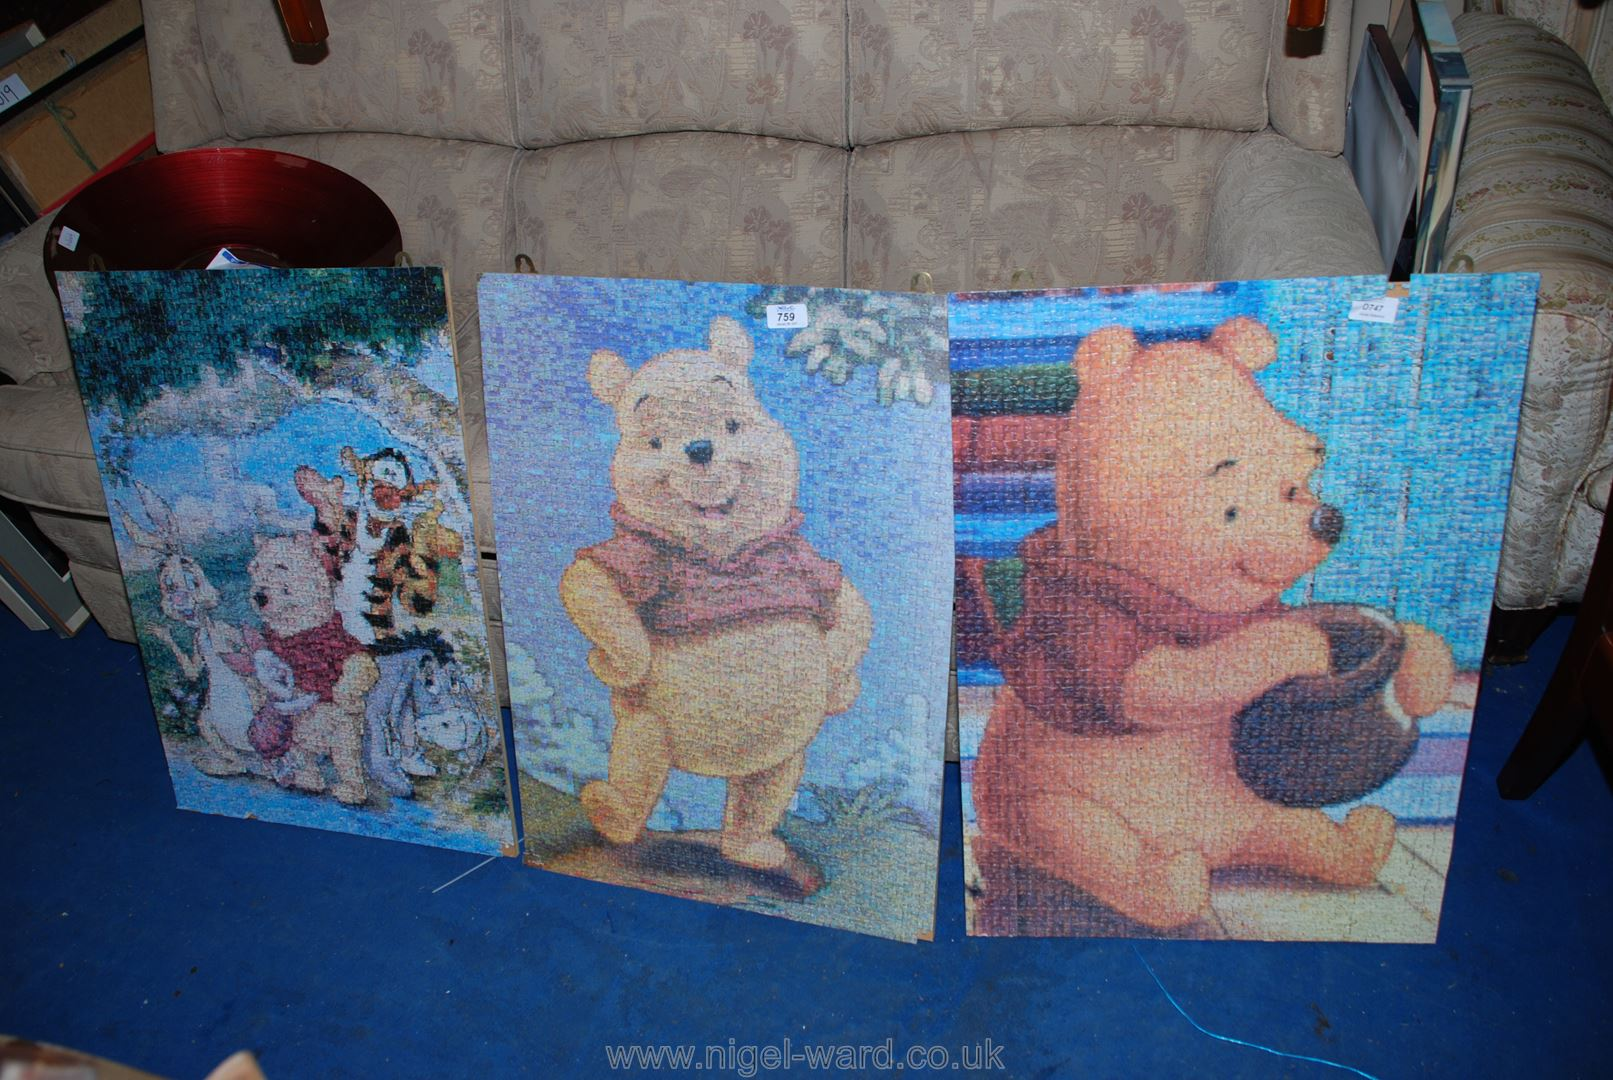 Three jig-saw puzzles assembled, affixed to boards, Winnie the Pooh, etc.